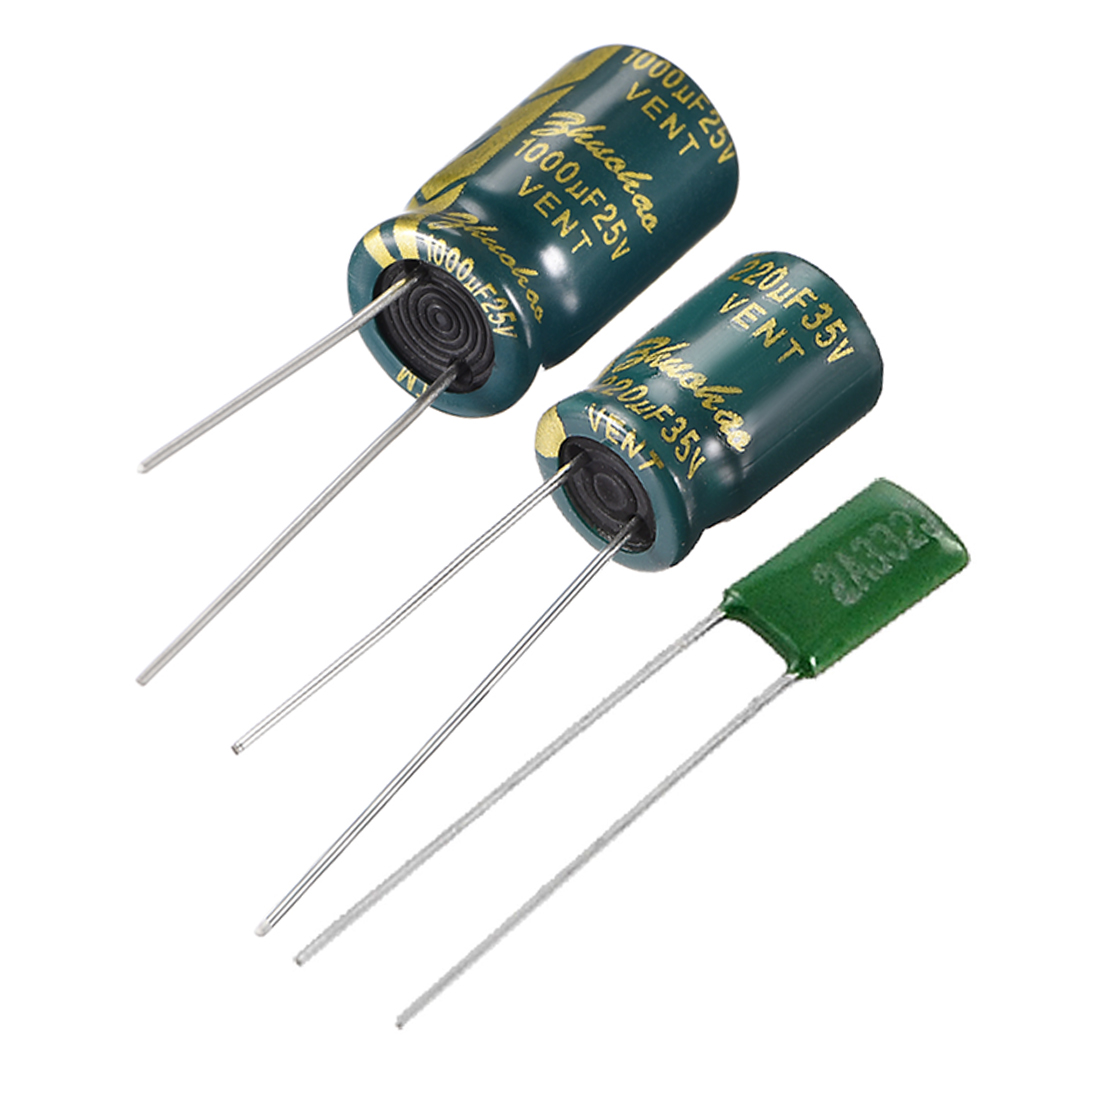 uxcell <font><b>25V</b></font> 35V 400V 2.2 10 22 100 <font><b>220</b></font> 470 1000uF 36 Electrolytic Capacitor for DIY Project Soldering image